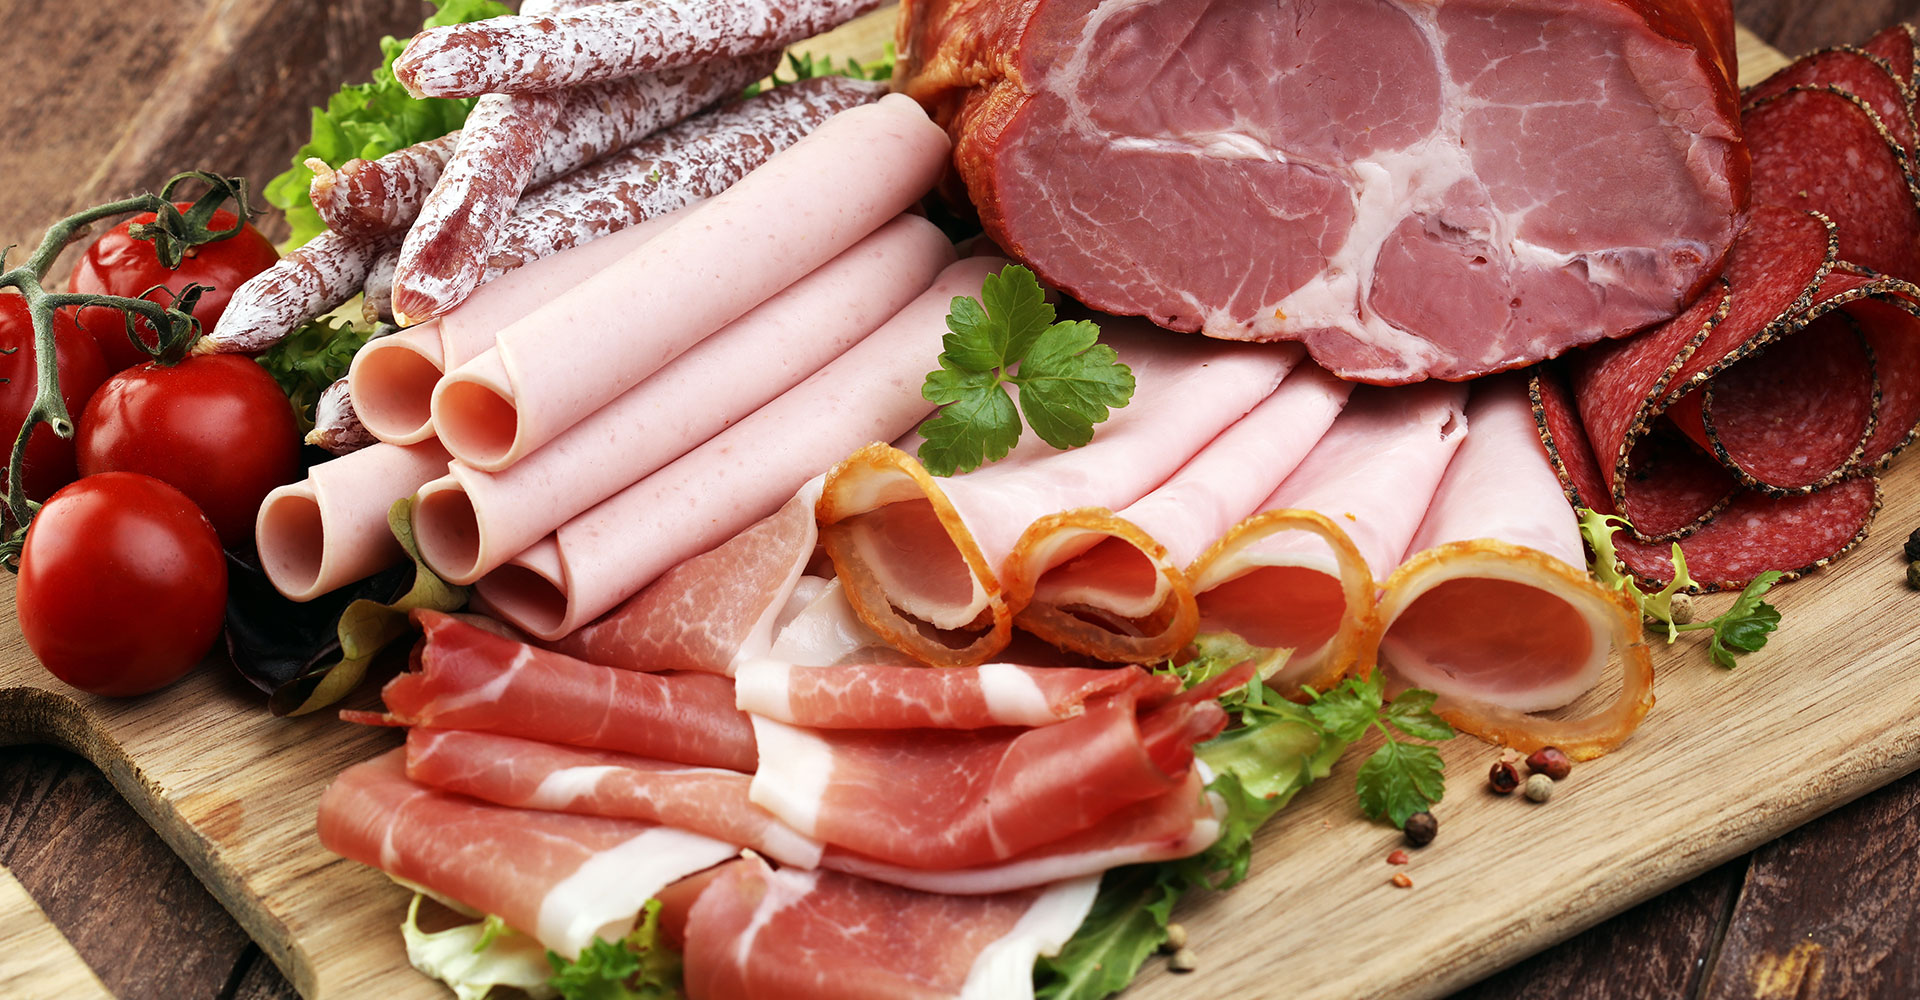 Cooked Meats G Mcwilliam Aberdeen Ltd